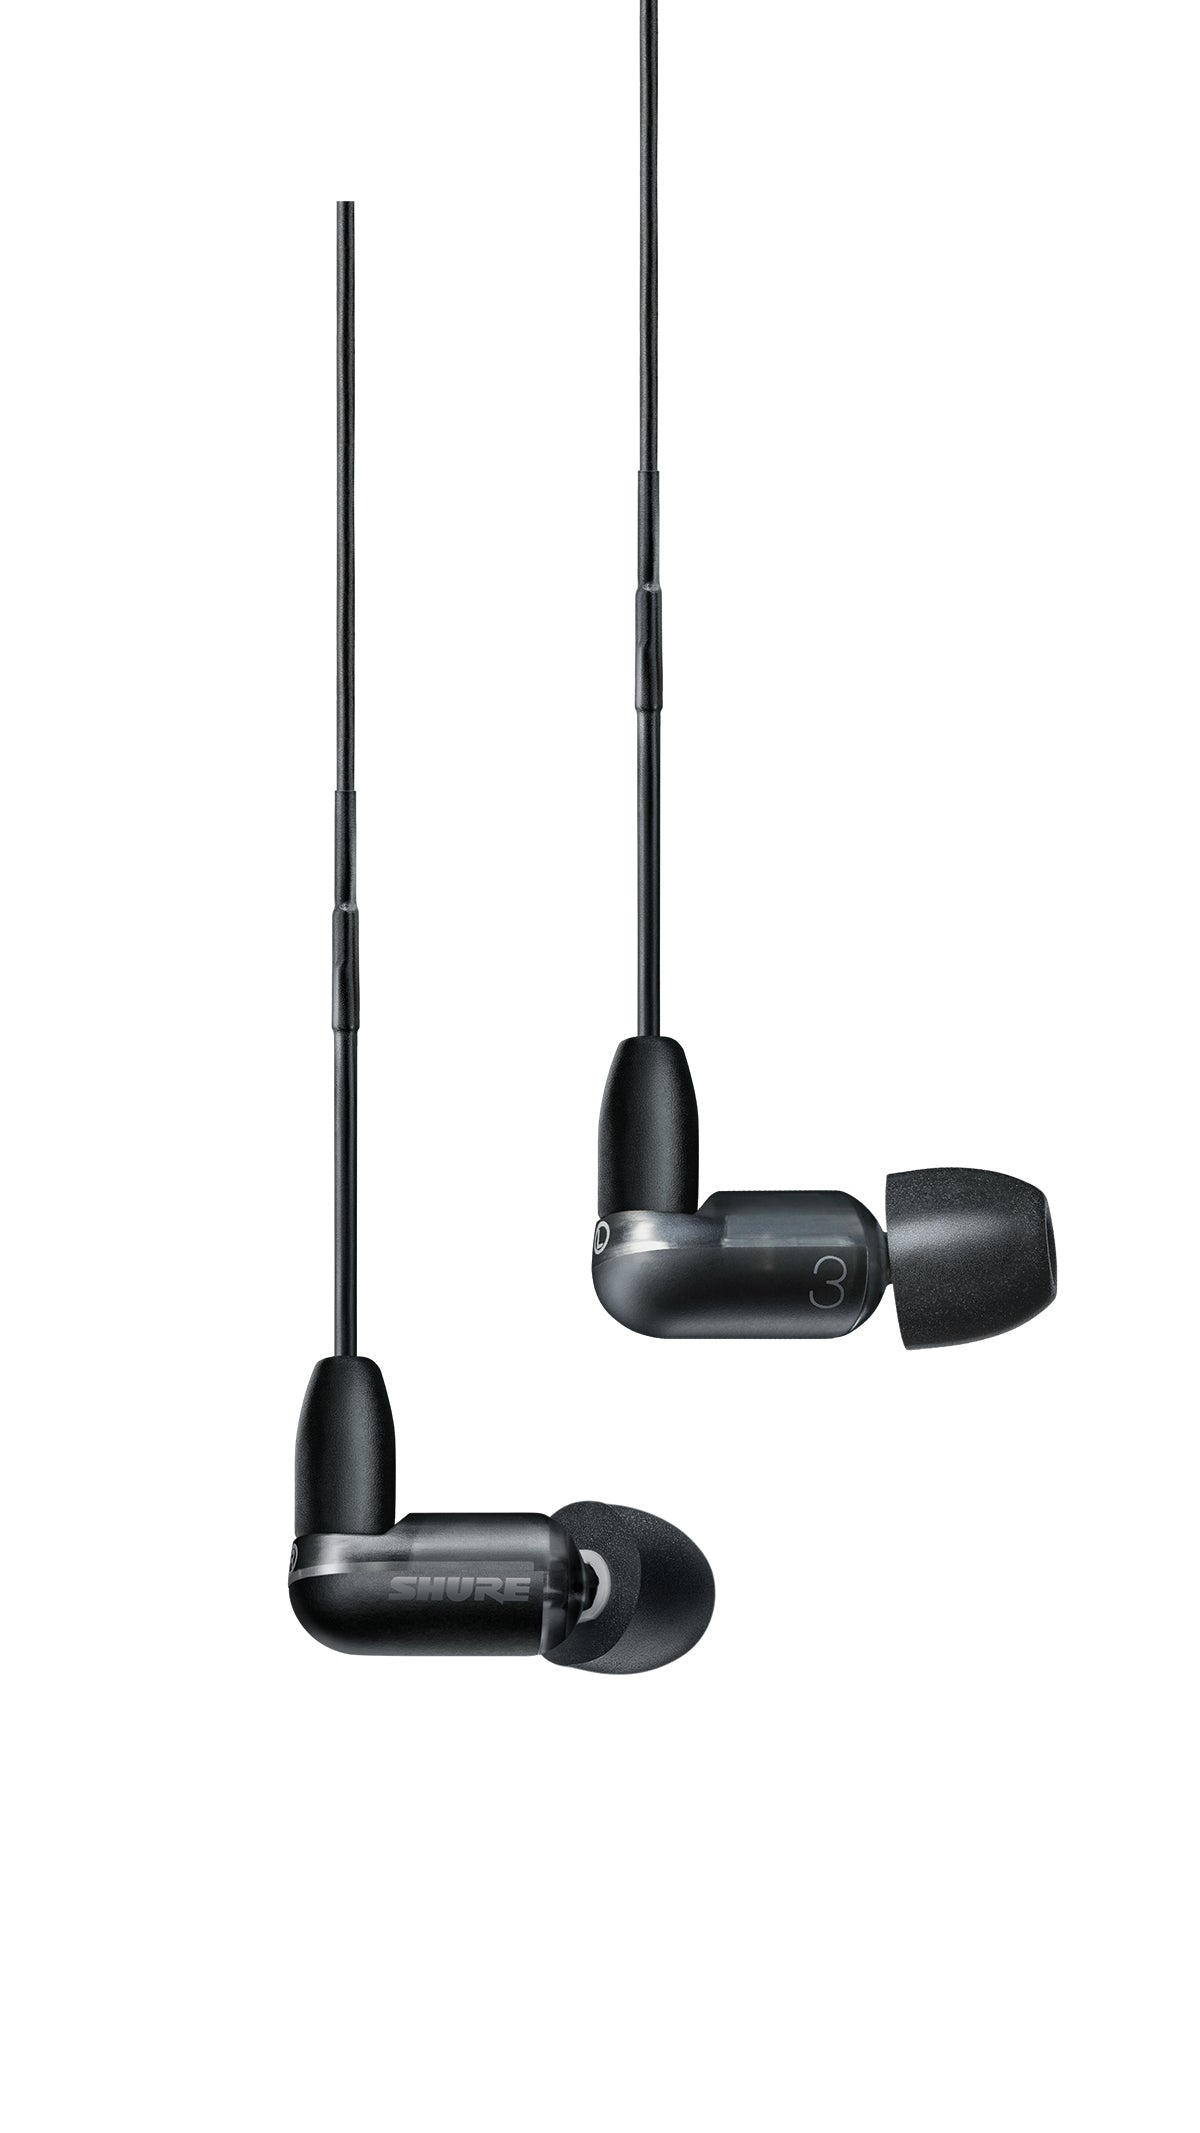 Shure AONIC 3 - Sound Isolating In-Ear Headphones